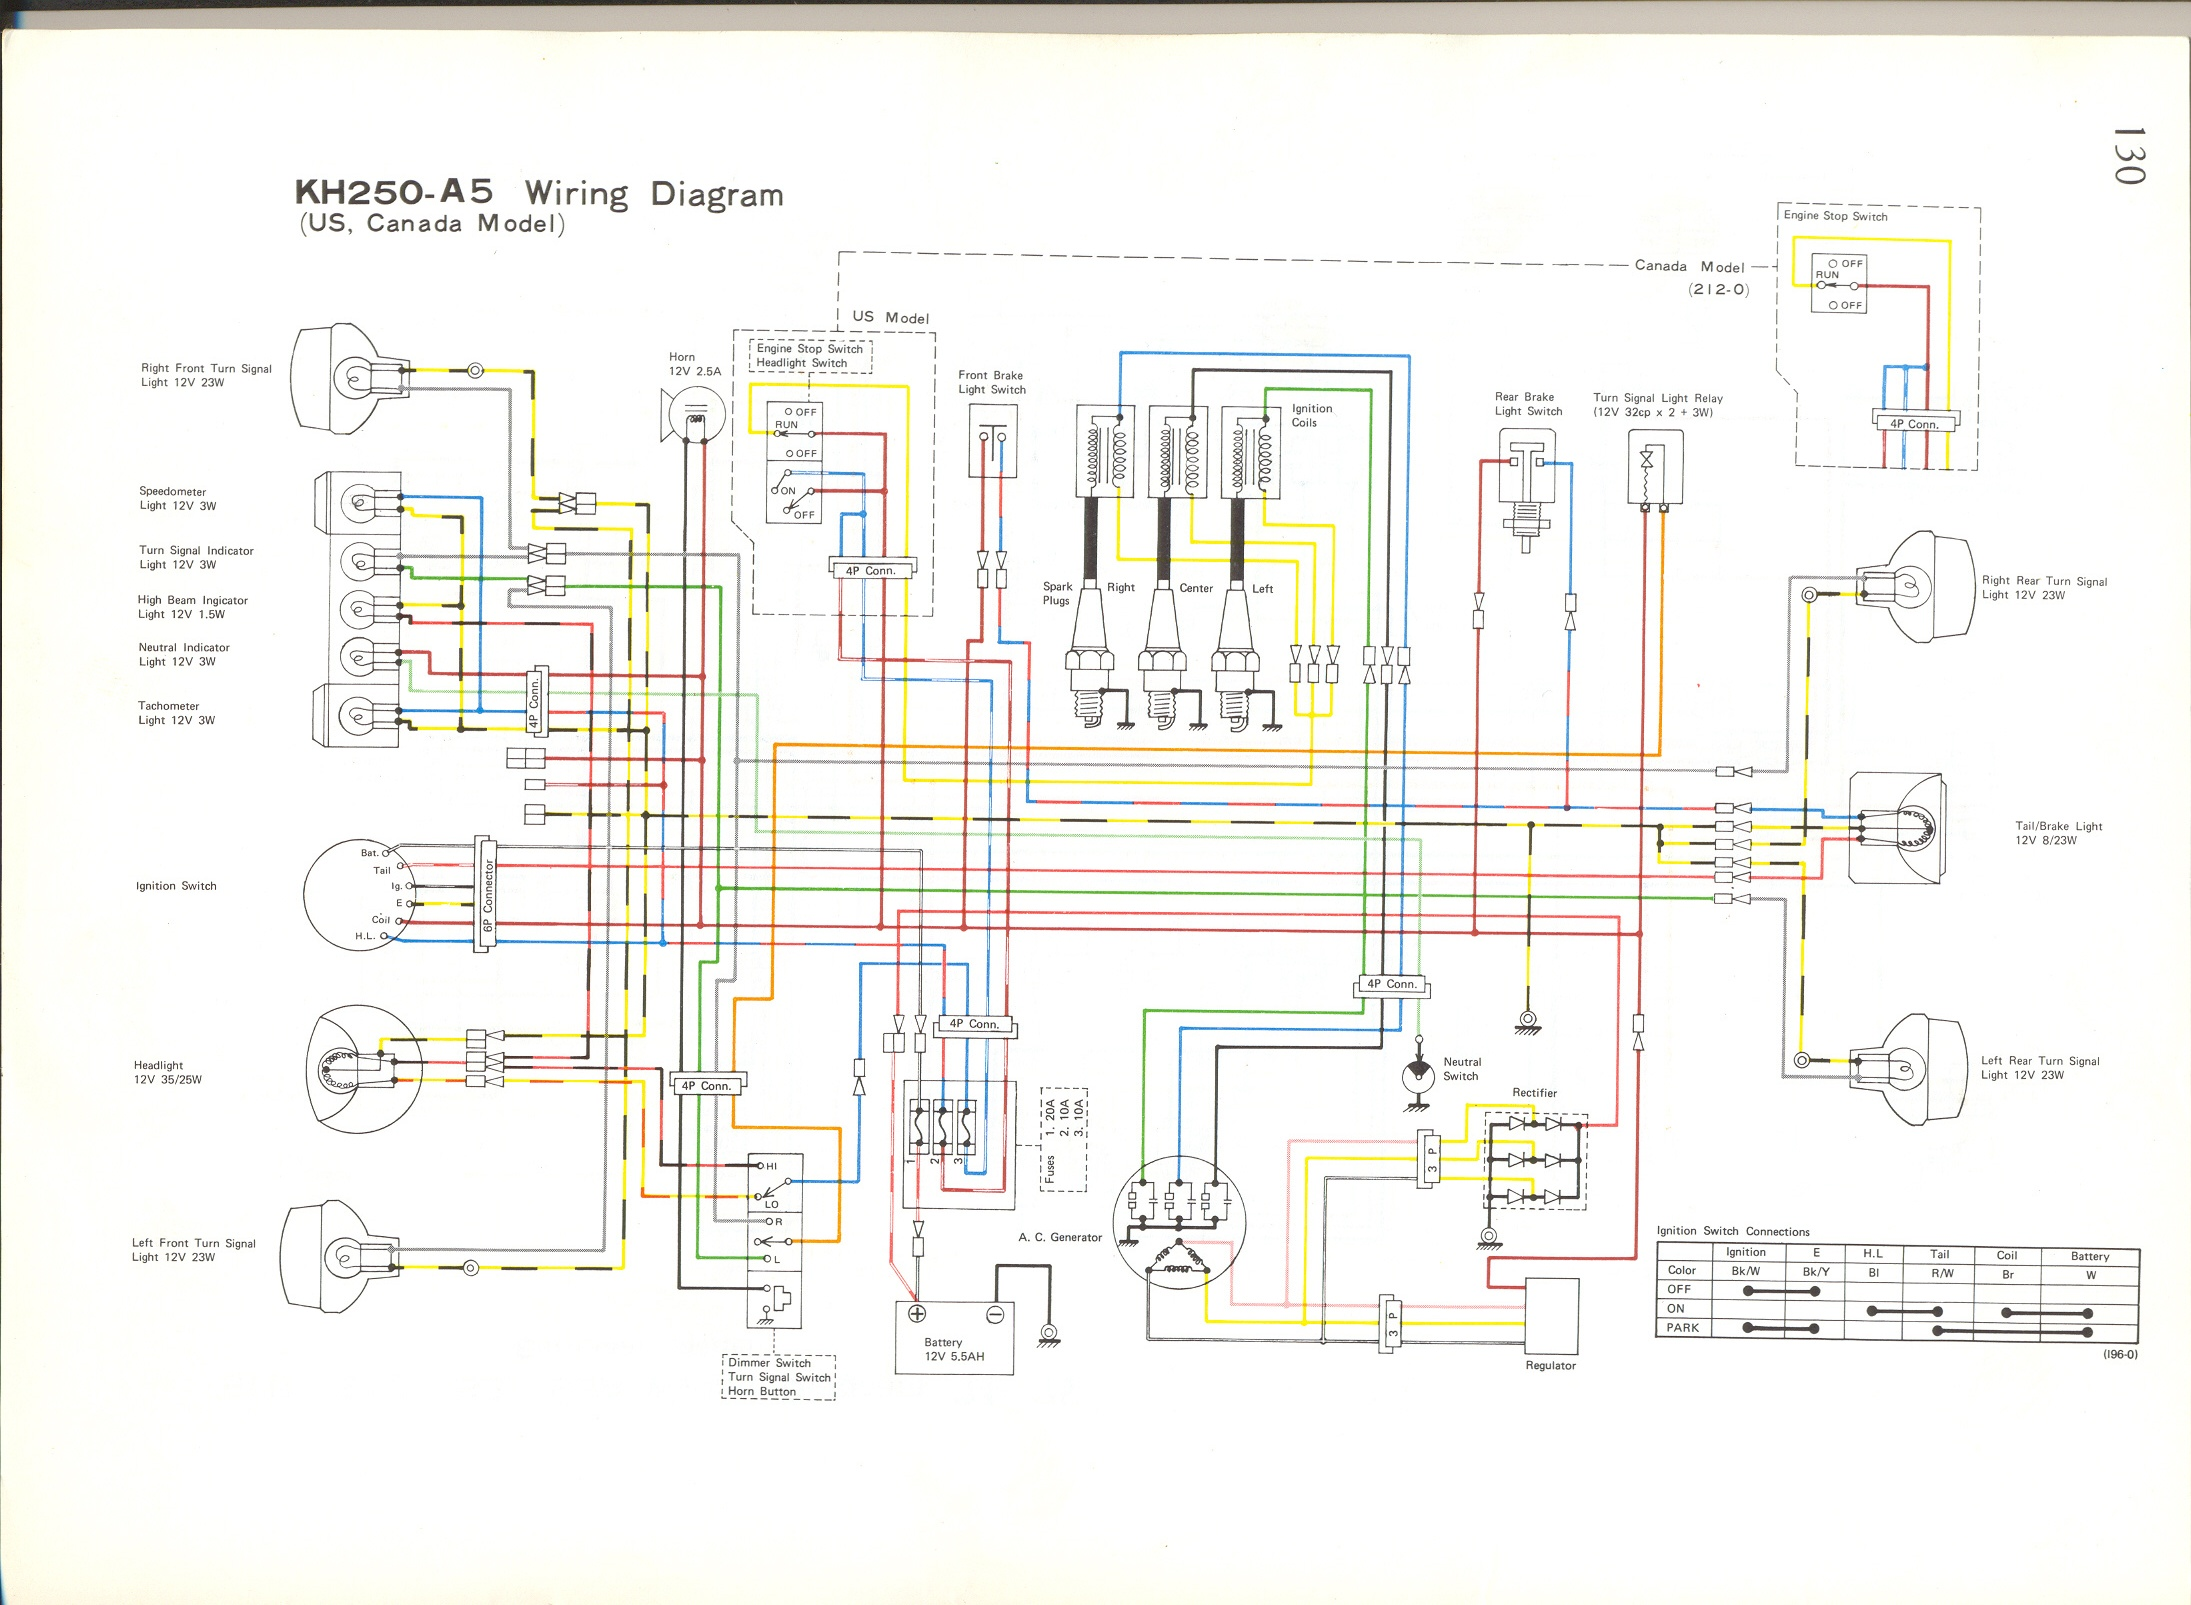 Wiring Diagrams 1999 Daihatsu Car Daihatsu Charade Wiring Diagram